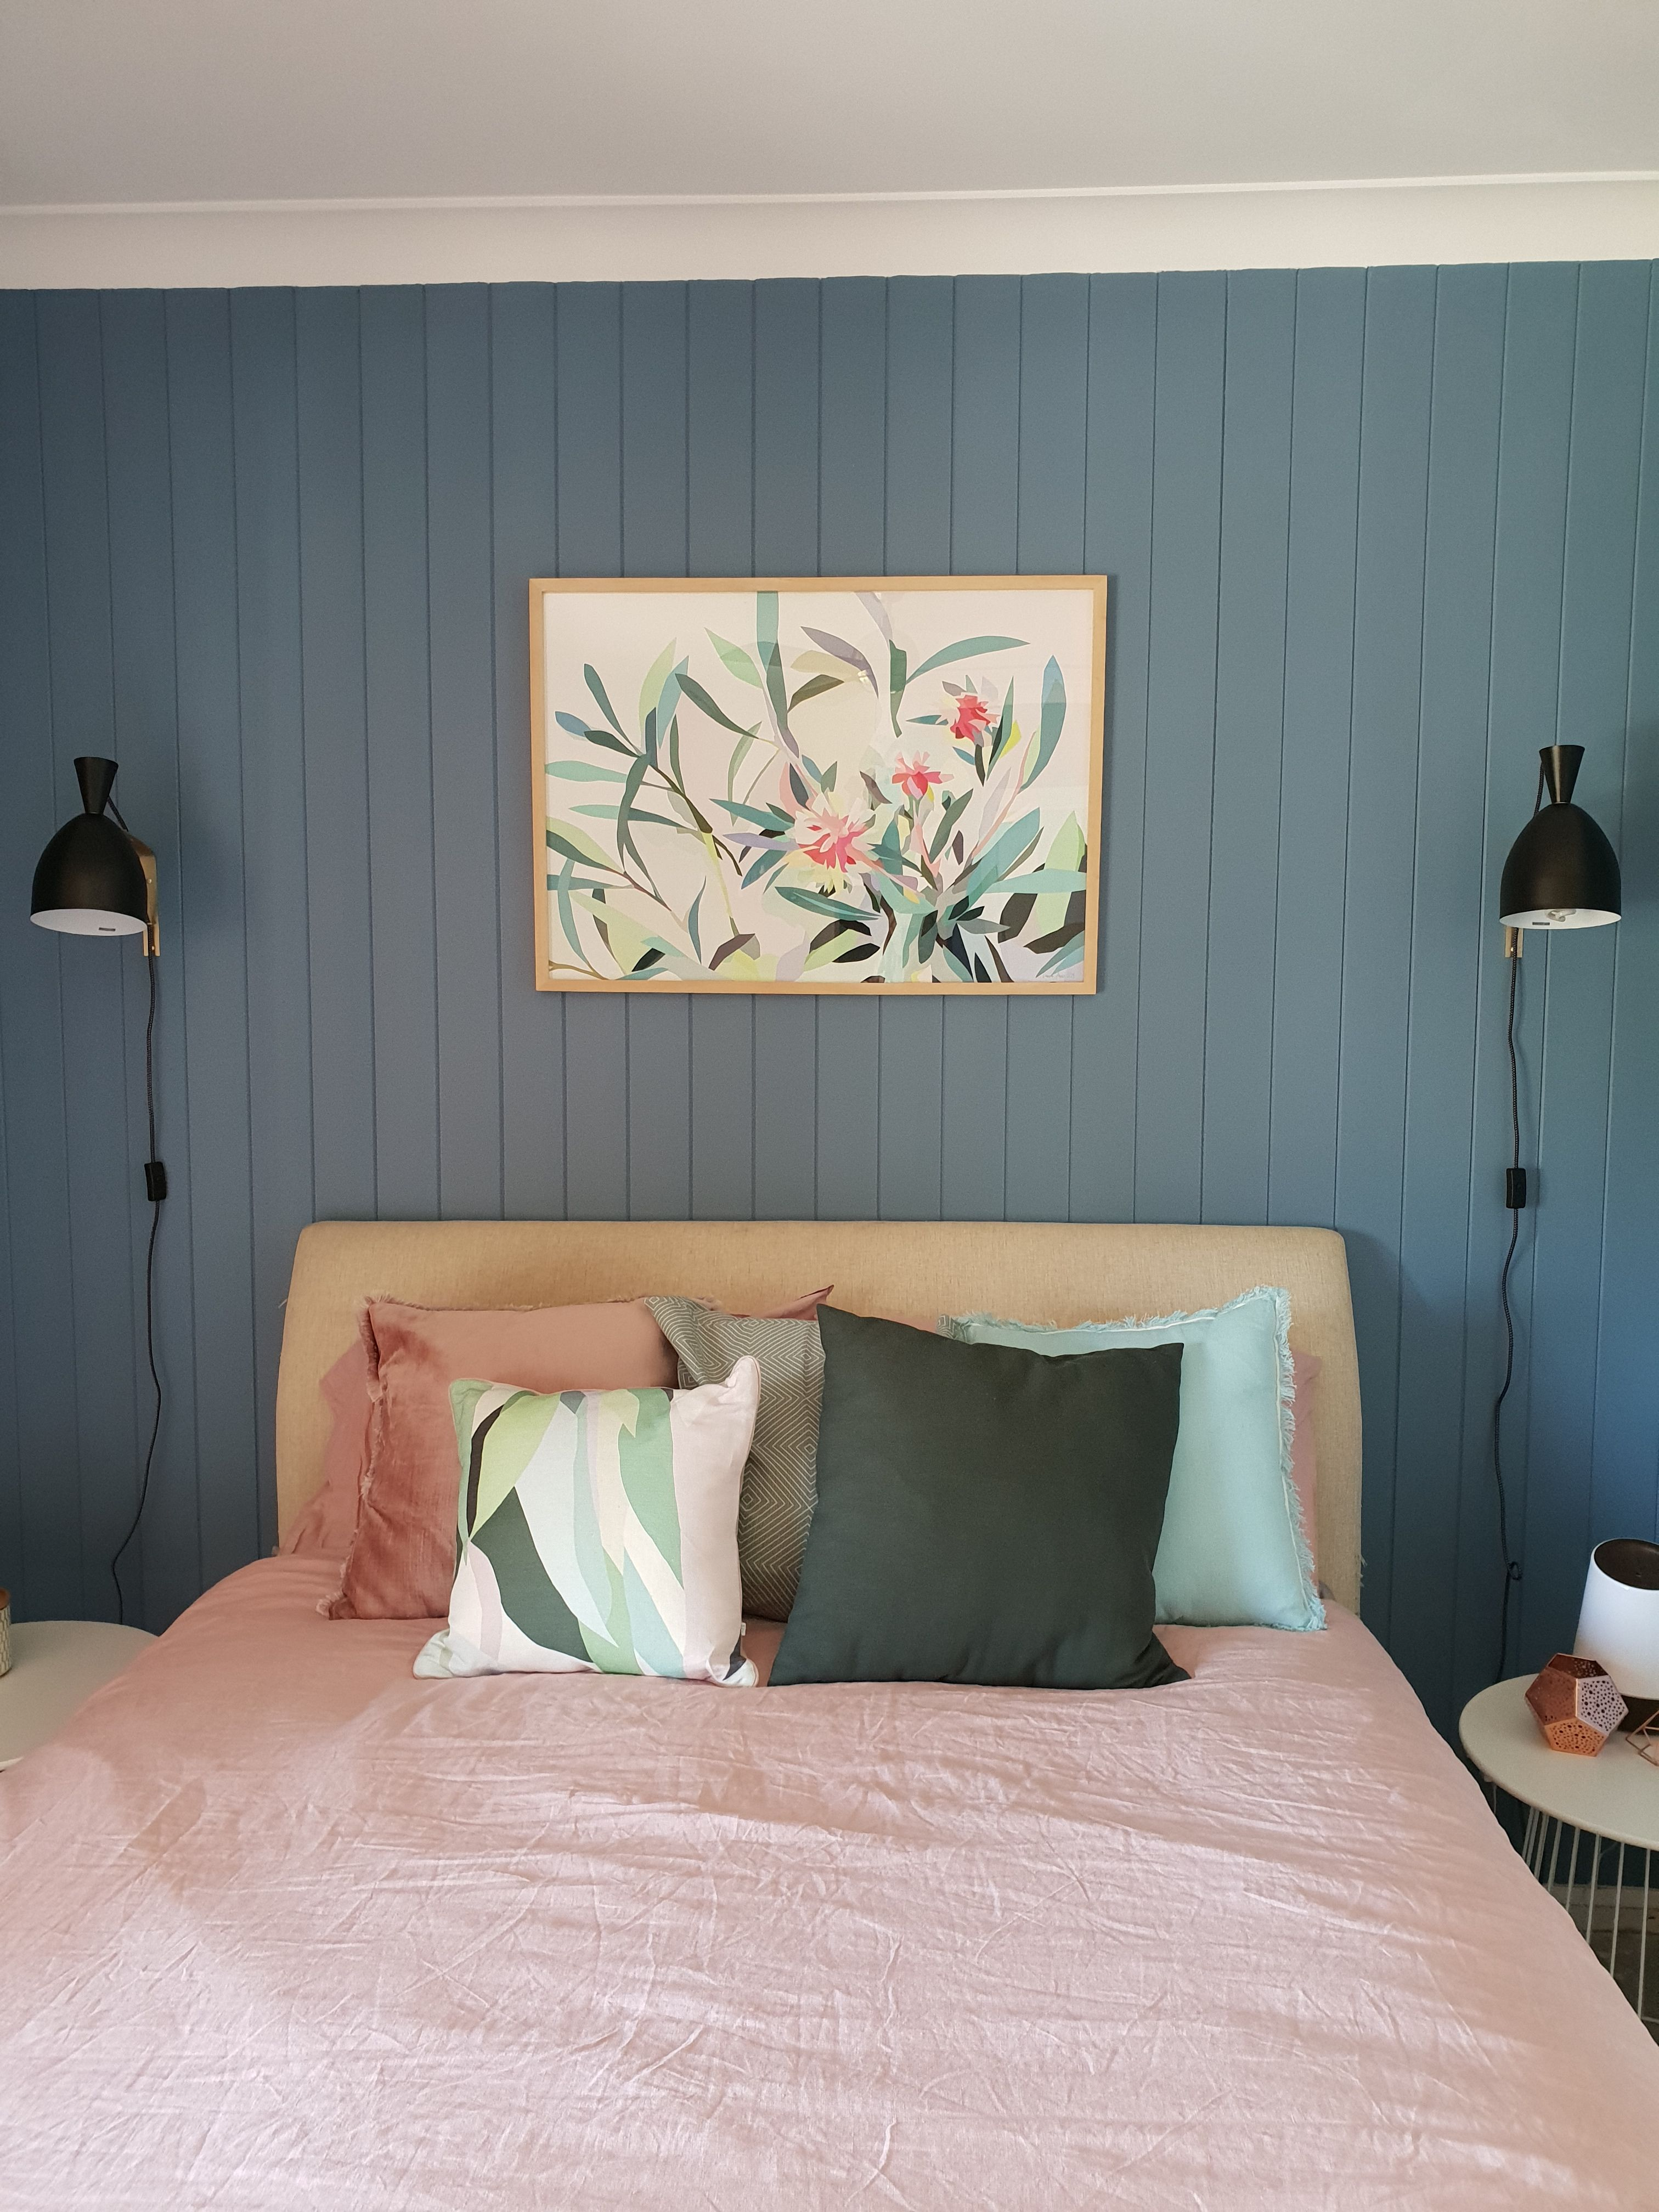 Modern Contemporary Bedroom inspired by modern Australian colours and botanical s VJ Board pained with Haymes Tempest Storm The bedding is Blush Pink and